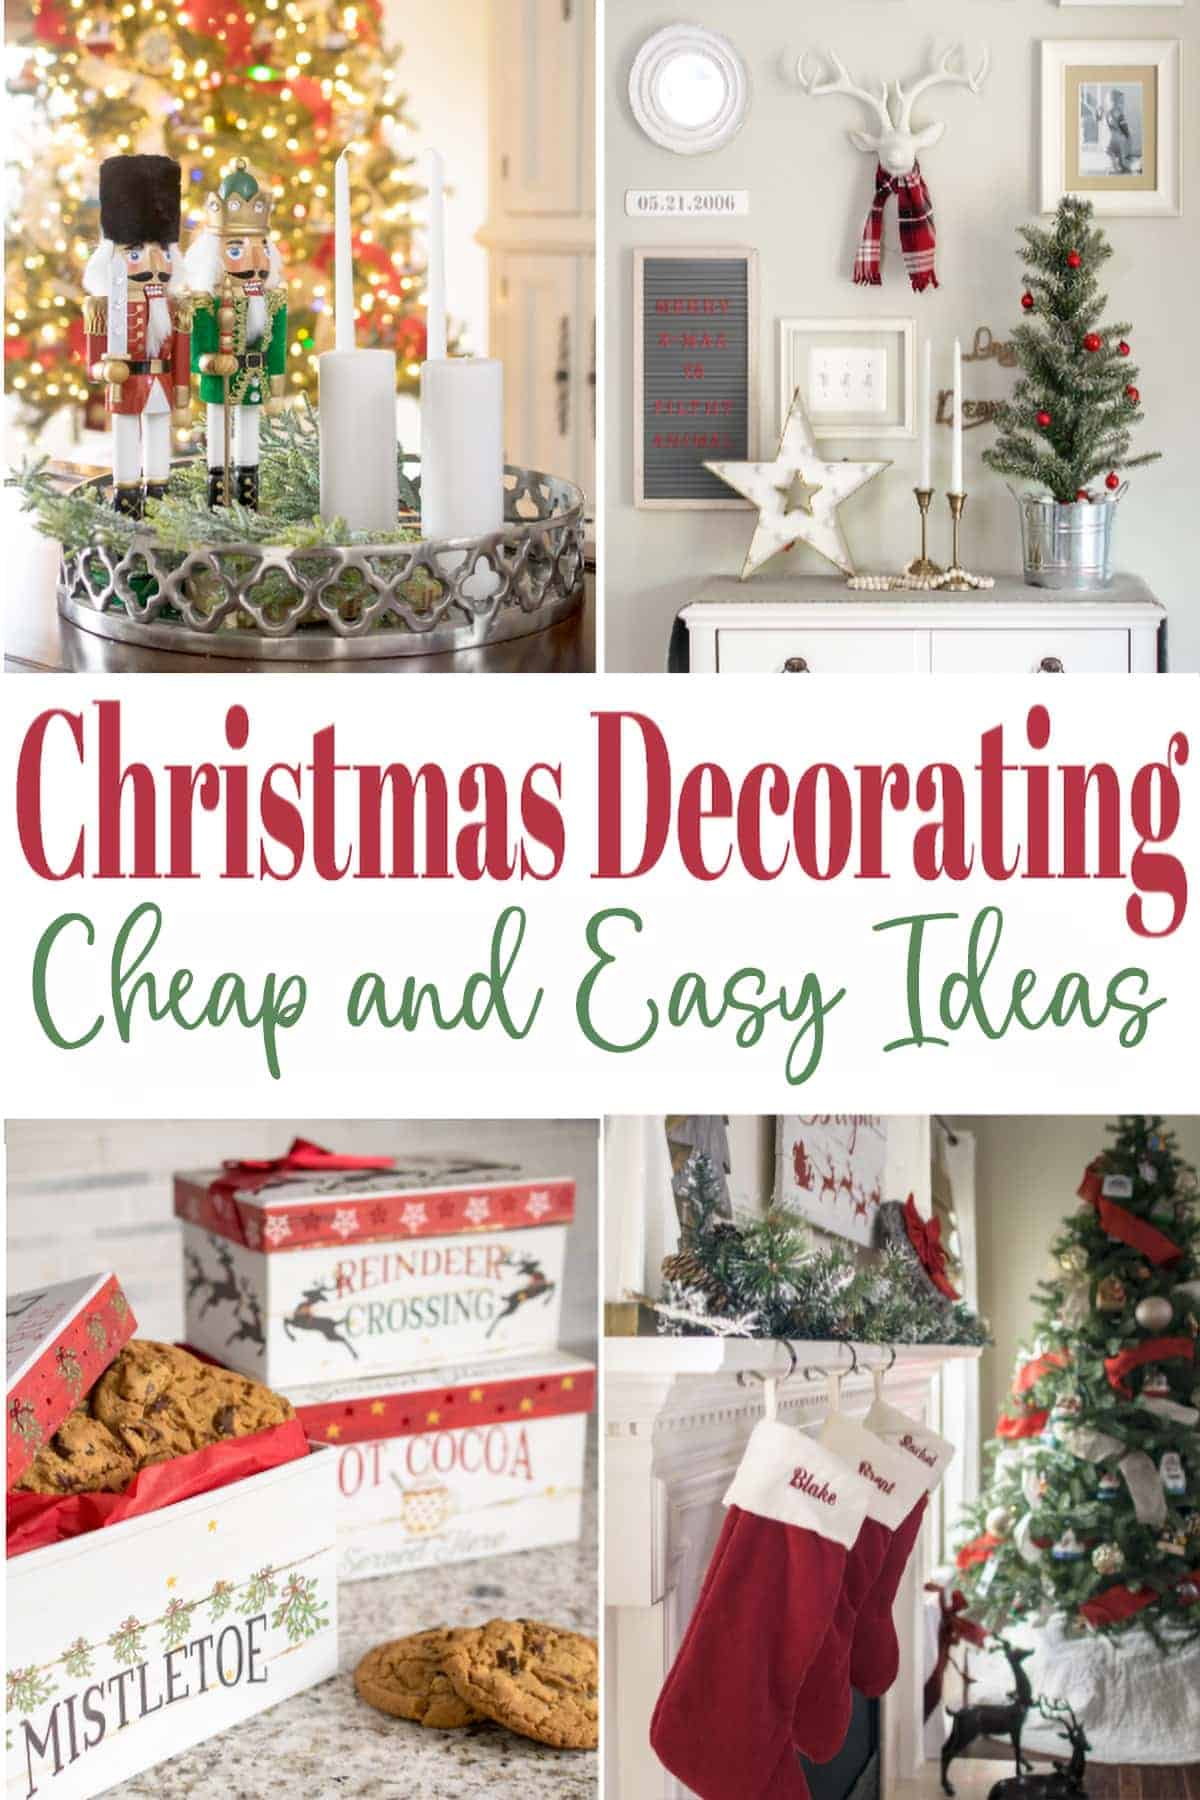 Christmas Decorating on a Budget with a roundup of image ideas and image title.